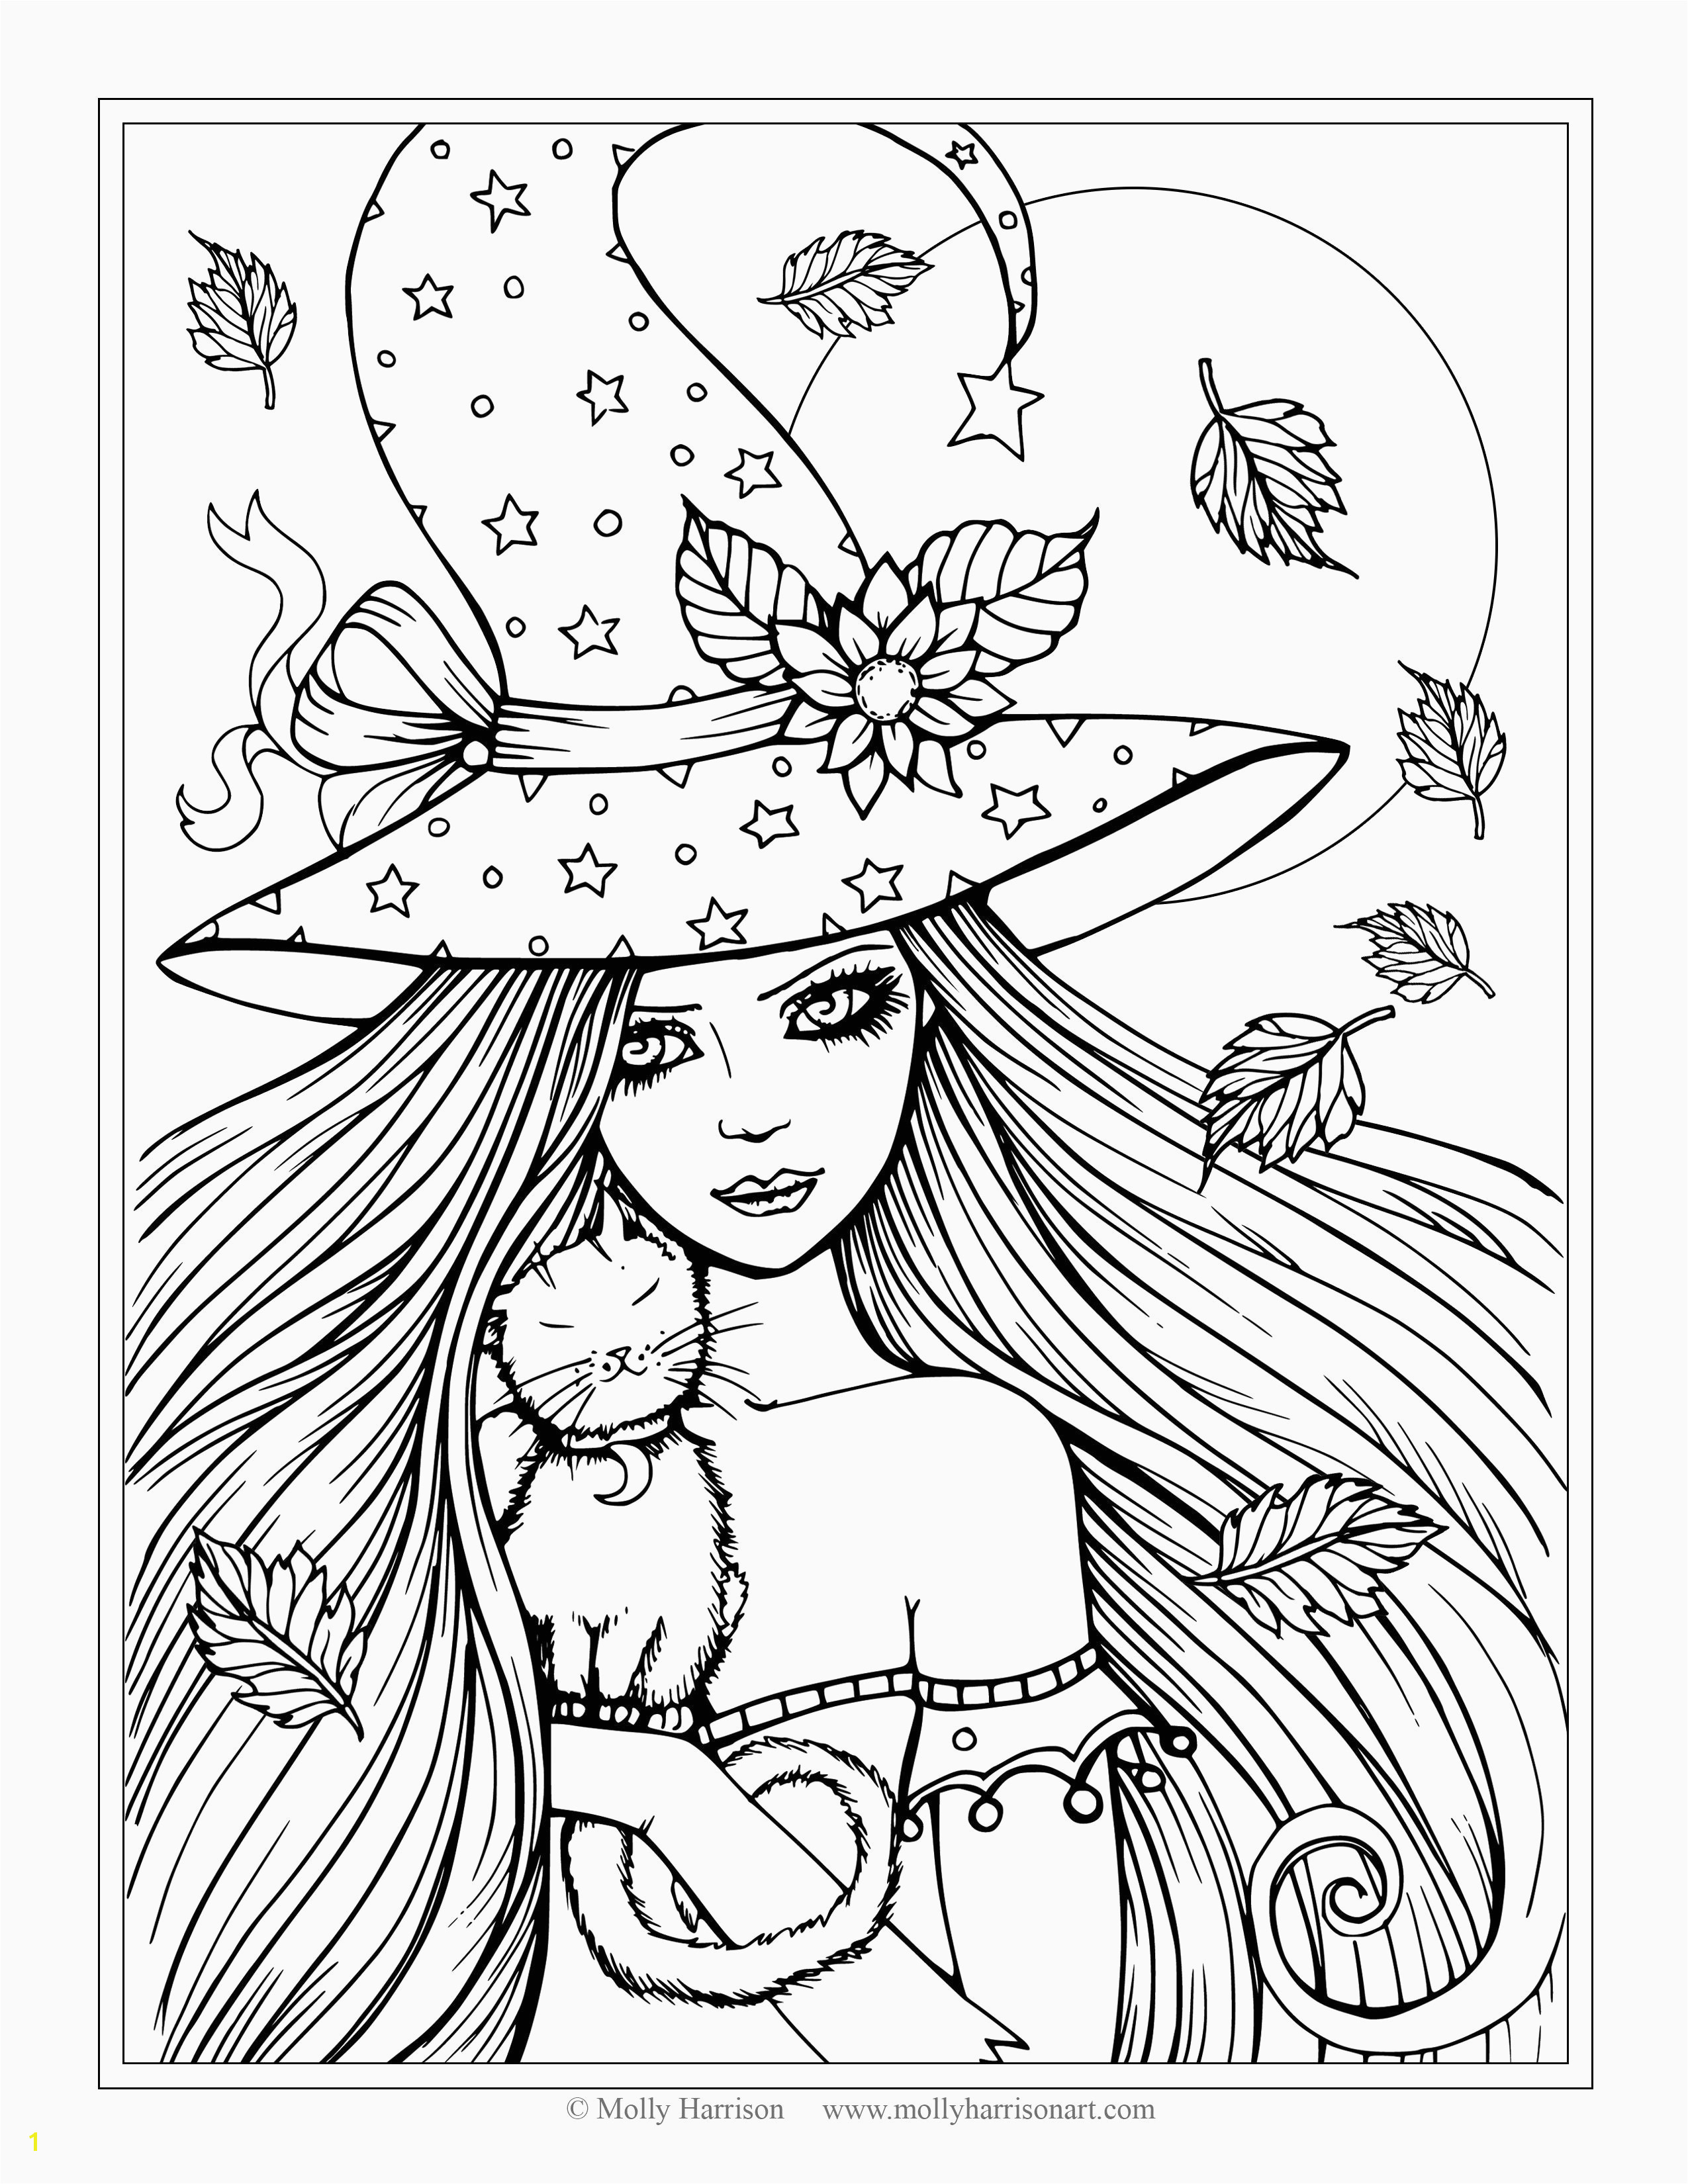 Free Coloring Pages Adults Best Gallery Printable Free Coloring Pages for Adults Best Printable Cds